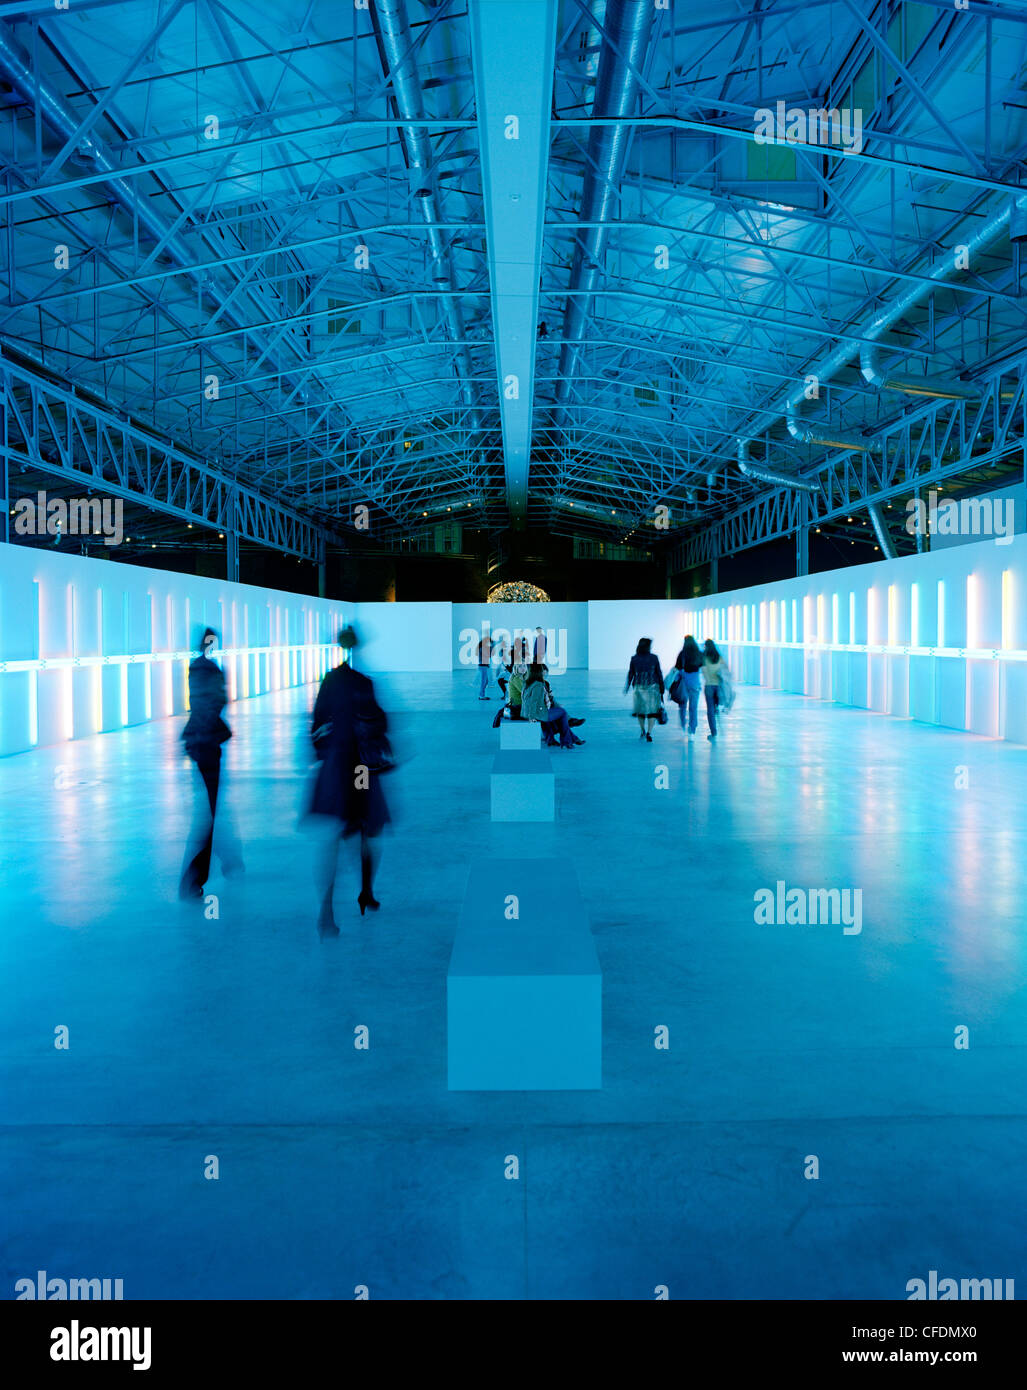 Light installation by Dan Flavin, exibition at The Garage, Center for Contemporary Cultur, Moscow, Russia, Europe - Stock Image